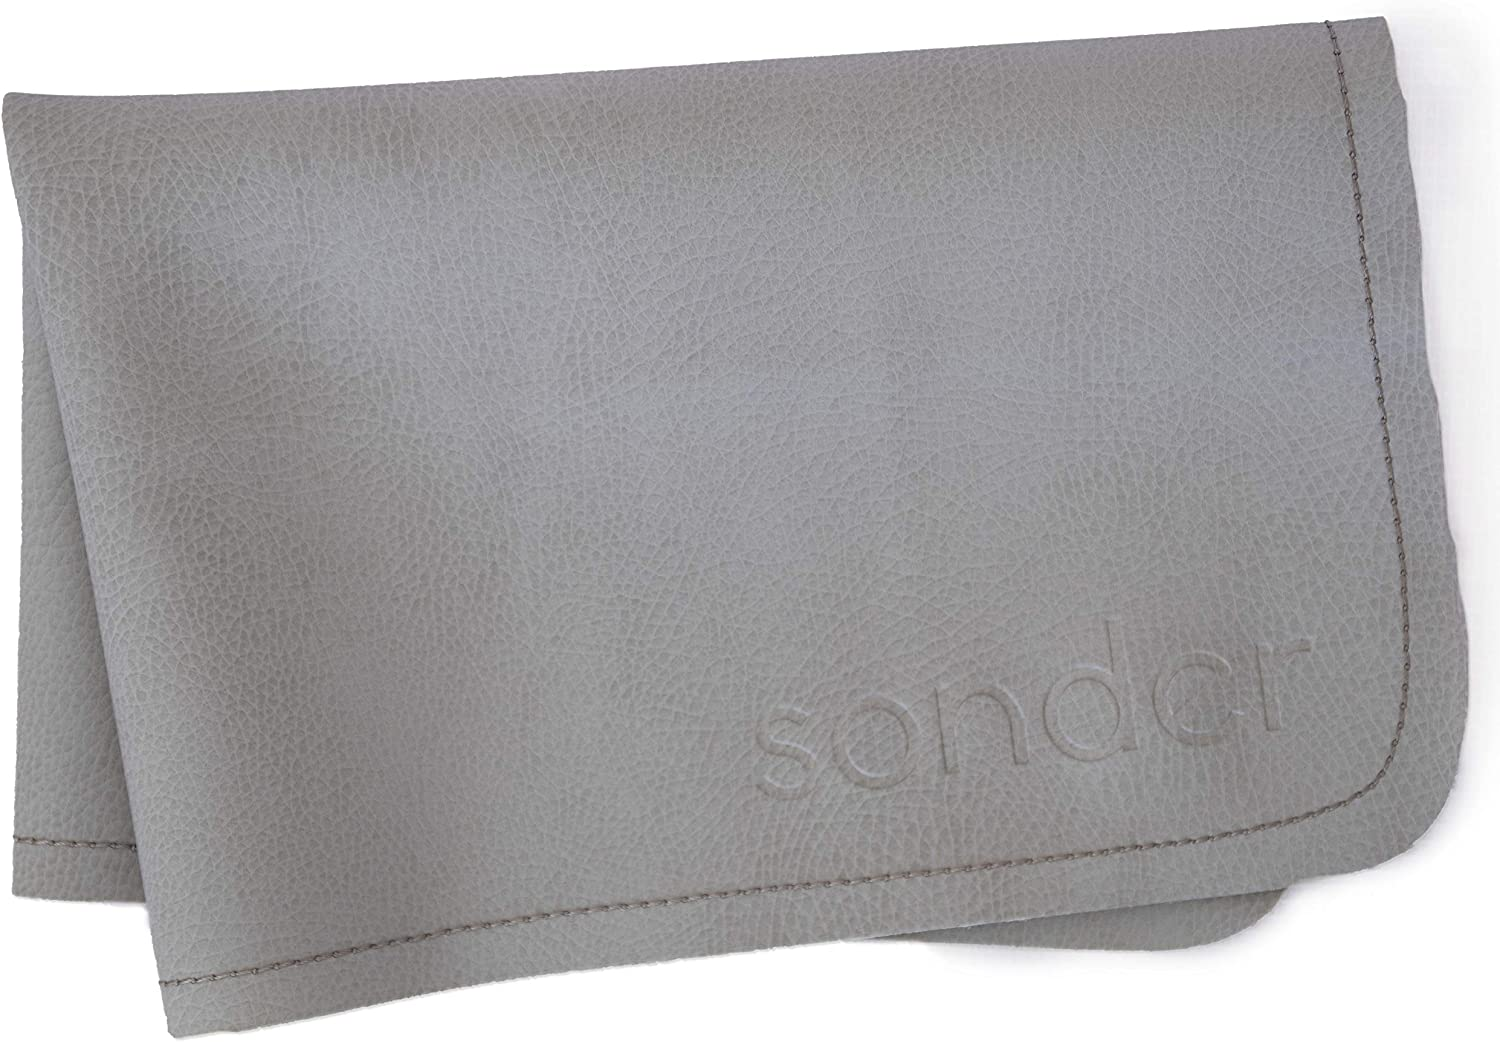 """SONDER Leather Baby Changing Mat - Multipurpose Portable Waterproof Diaper Pad - Compact for Travel - Deluxe Leather Diaper Changer - Size 14"""" by 22"""""""